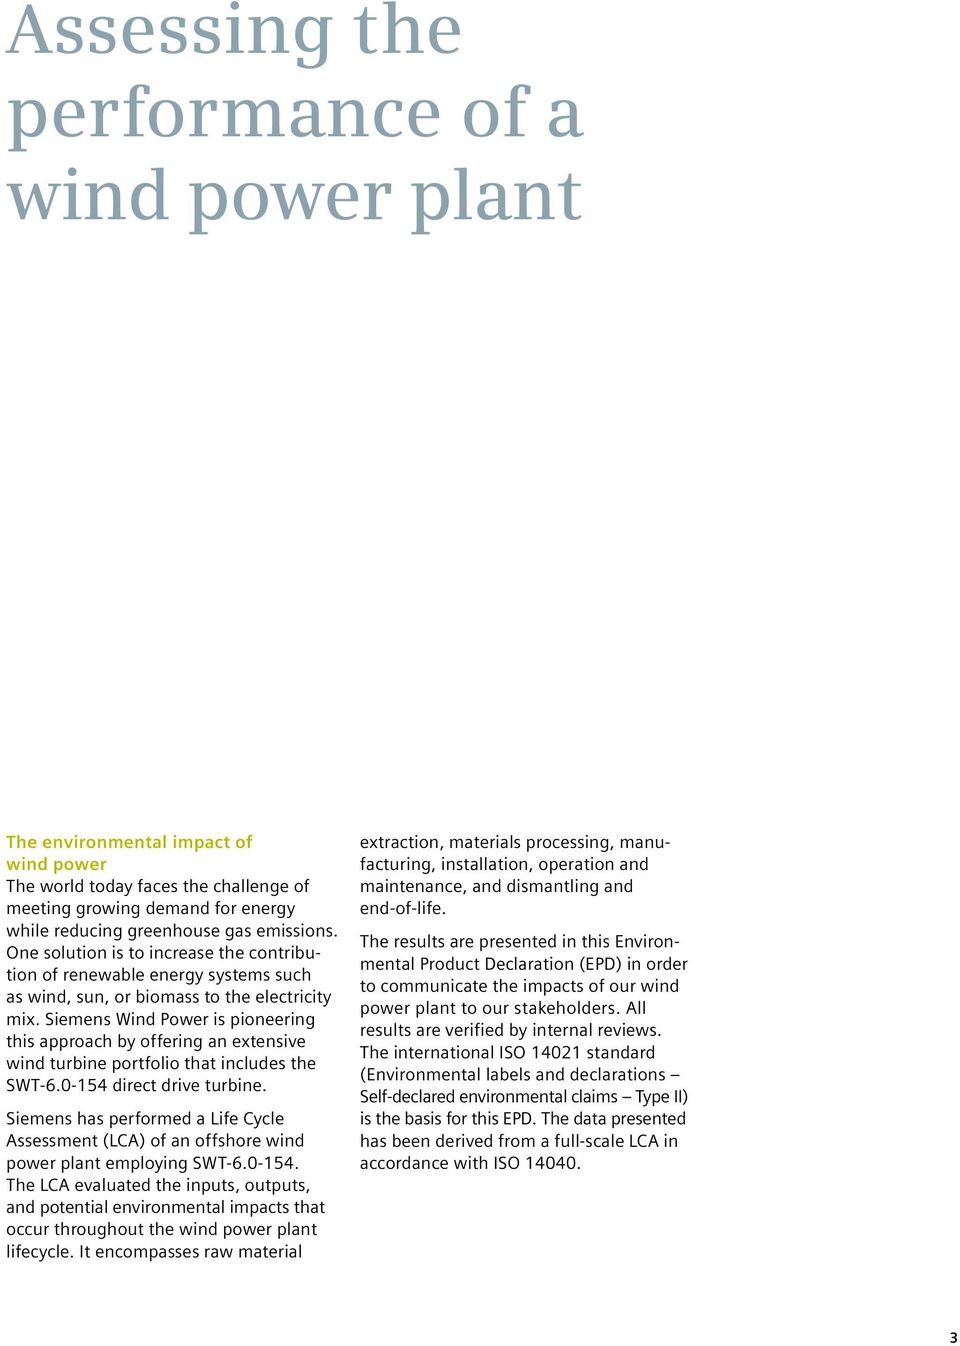 Siemens Wind Power is pioneering this approach by offering an extensive wind turbine portfolio that includes the SWT-6.0-154 direct drive turbine.